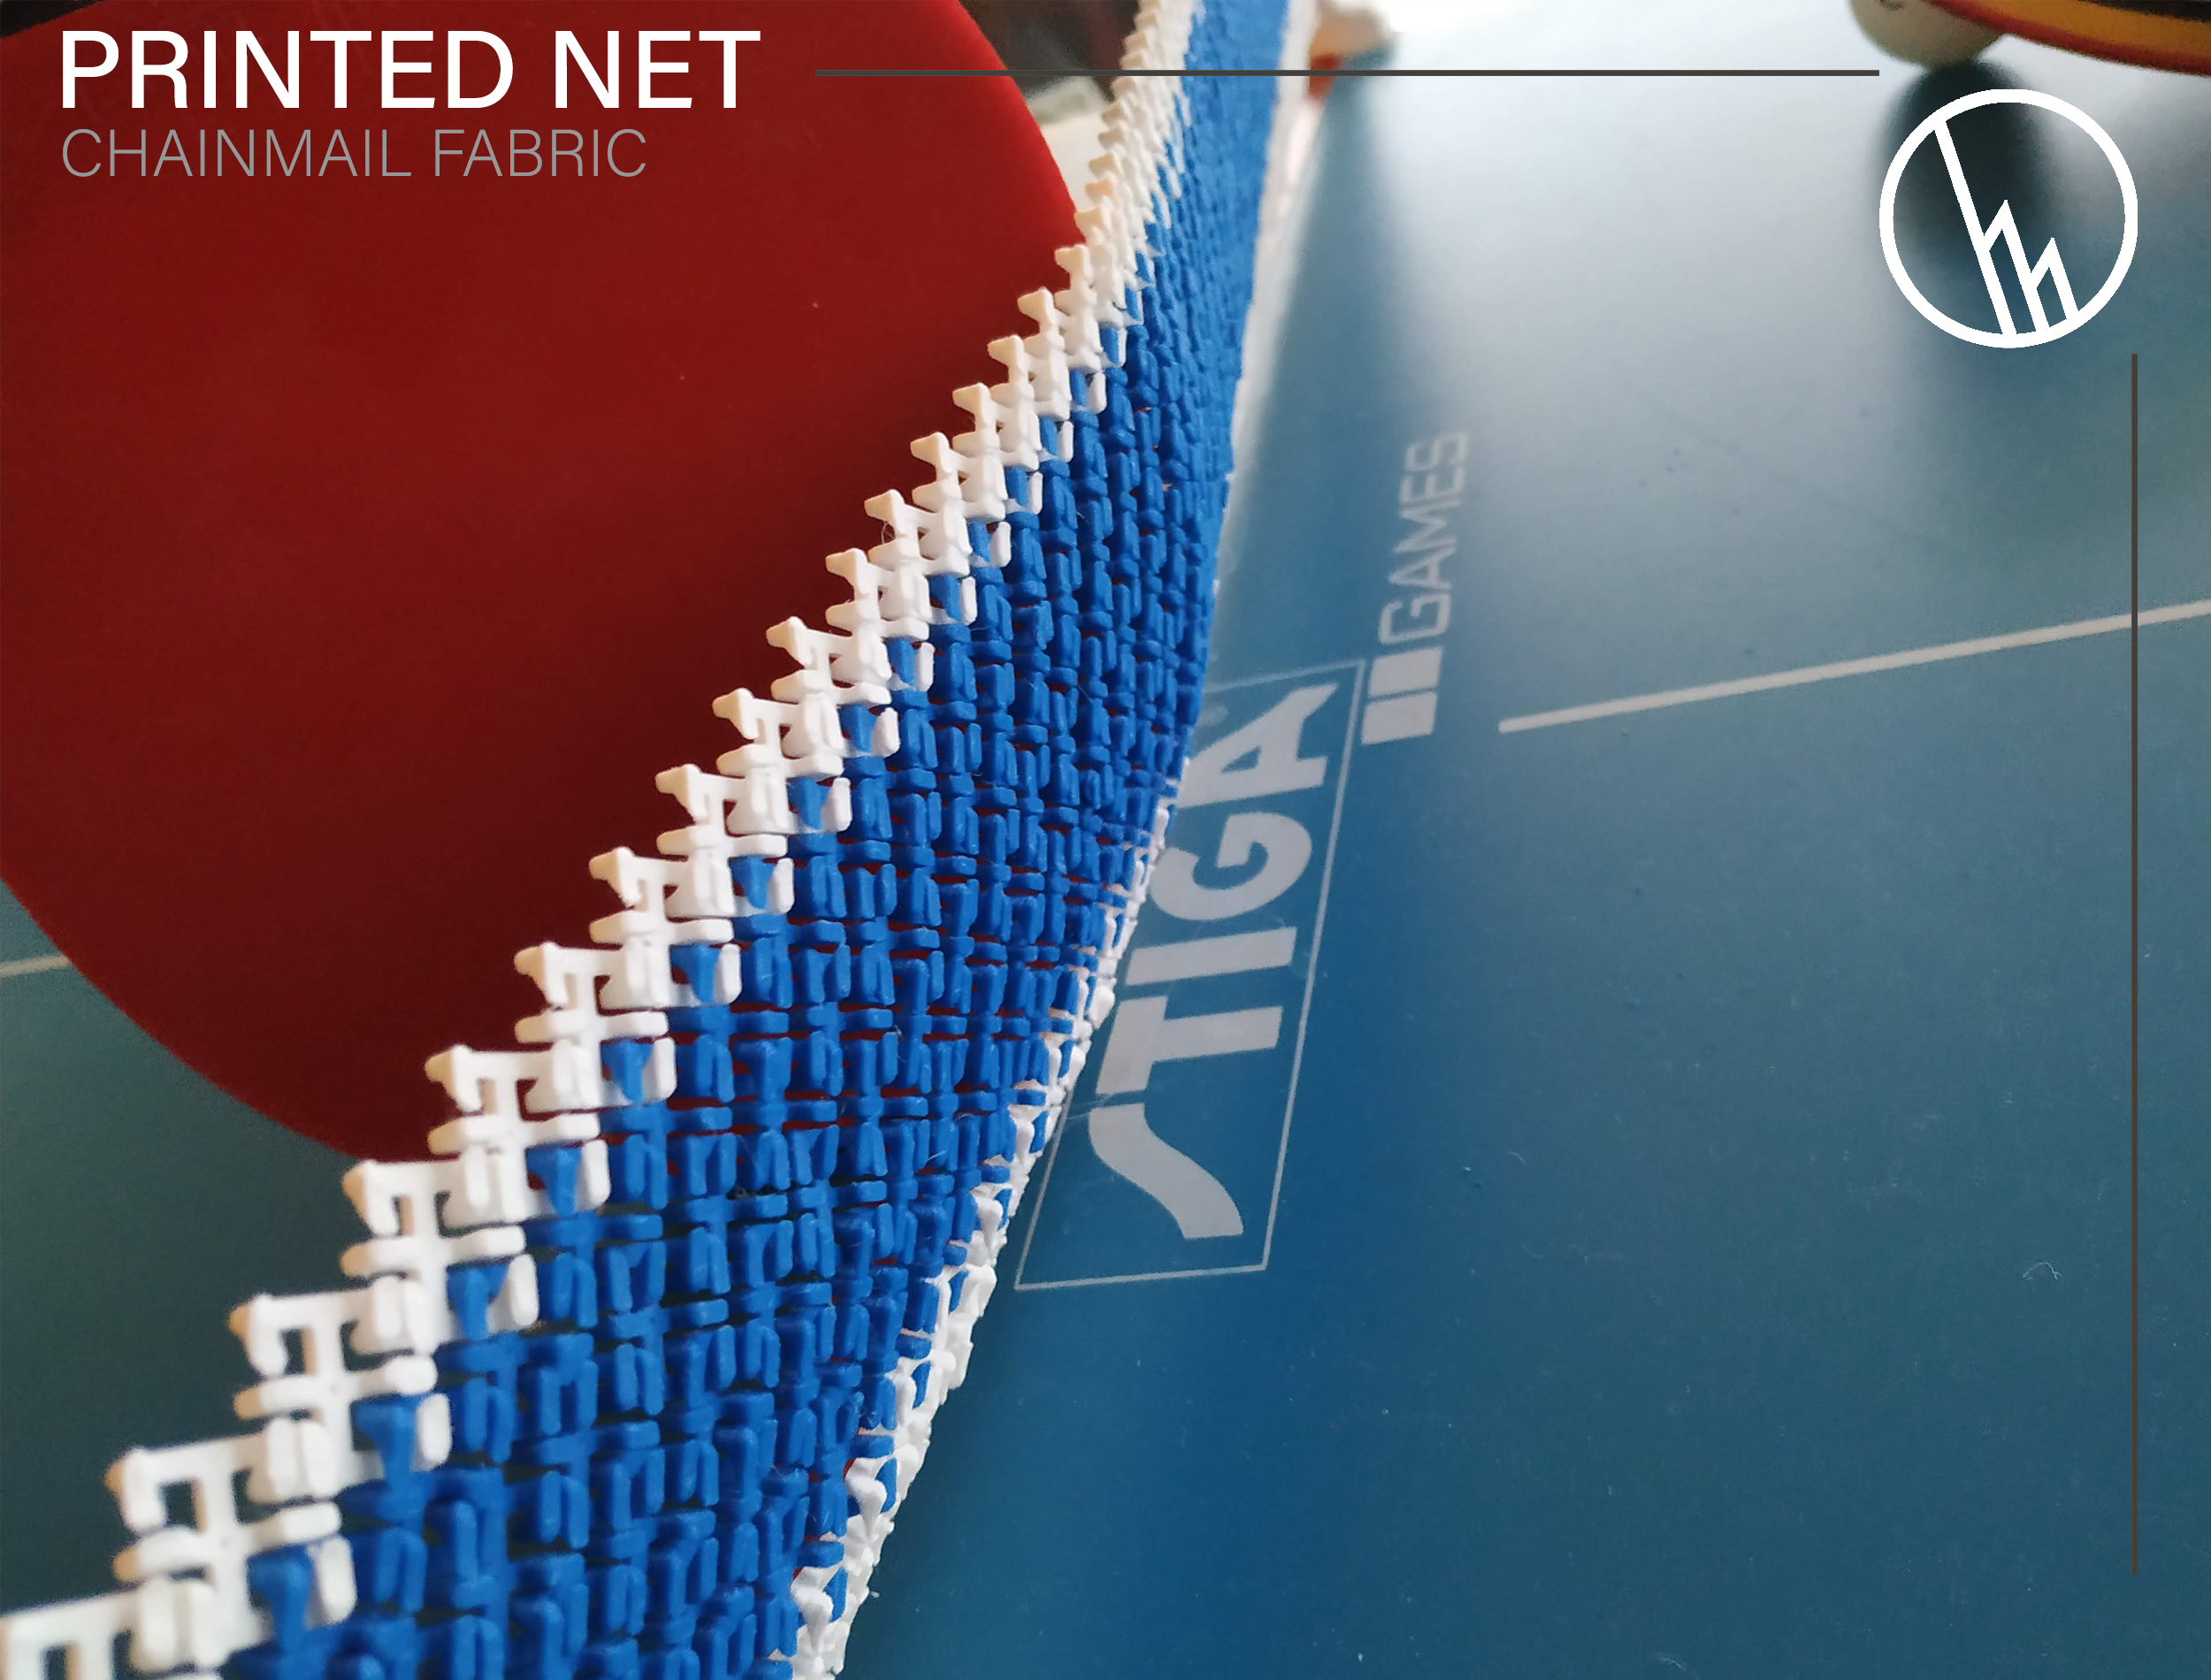 Showcase_02.png Download free STL file Table tennis net (chainmail) • 3D printable model, WilliamStadheim